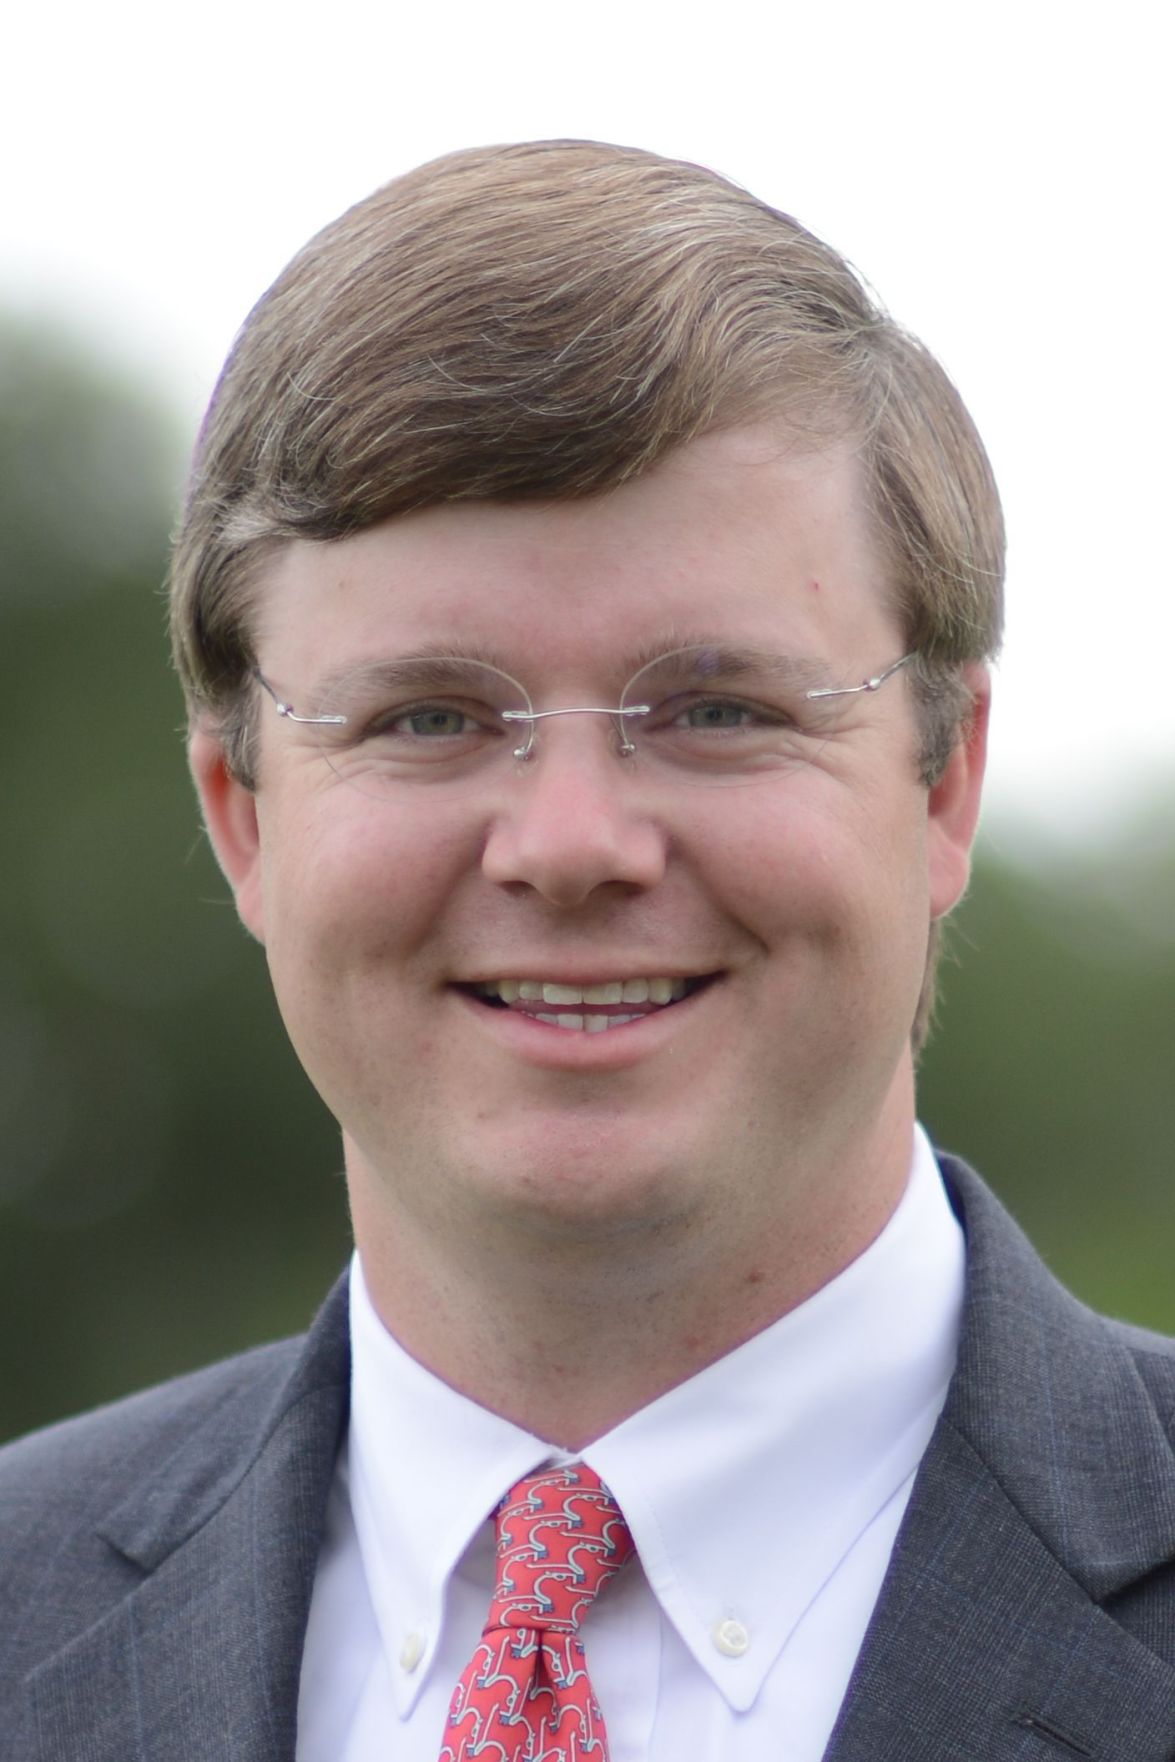 Whitley will fill Berkeley County Council seat